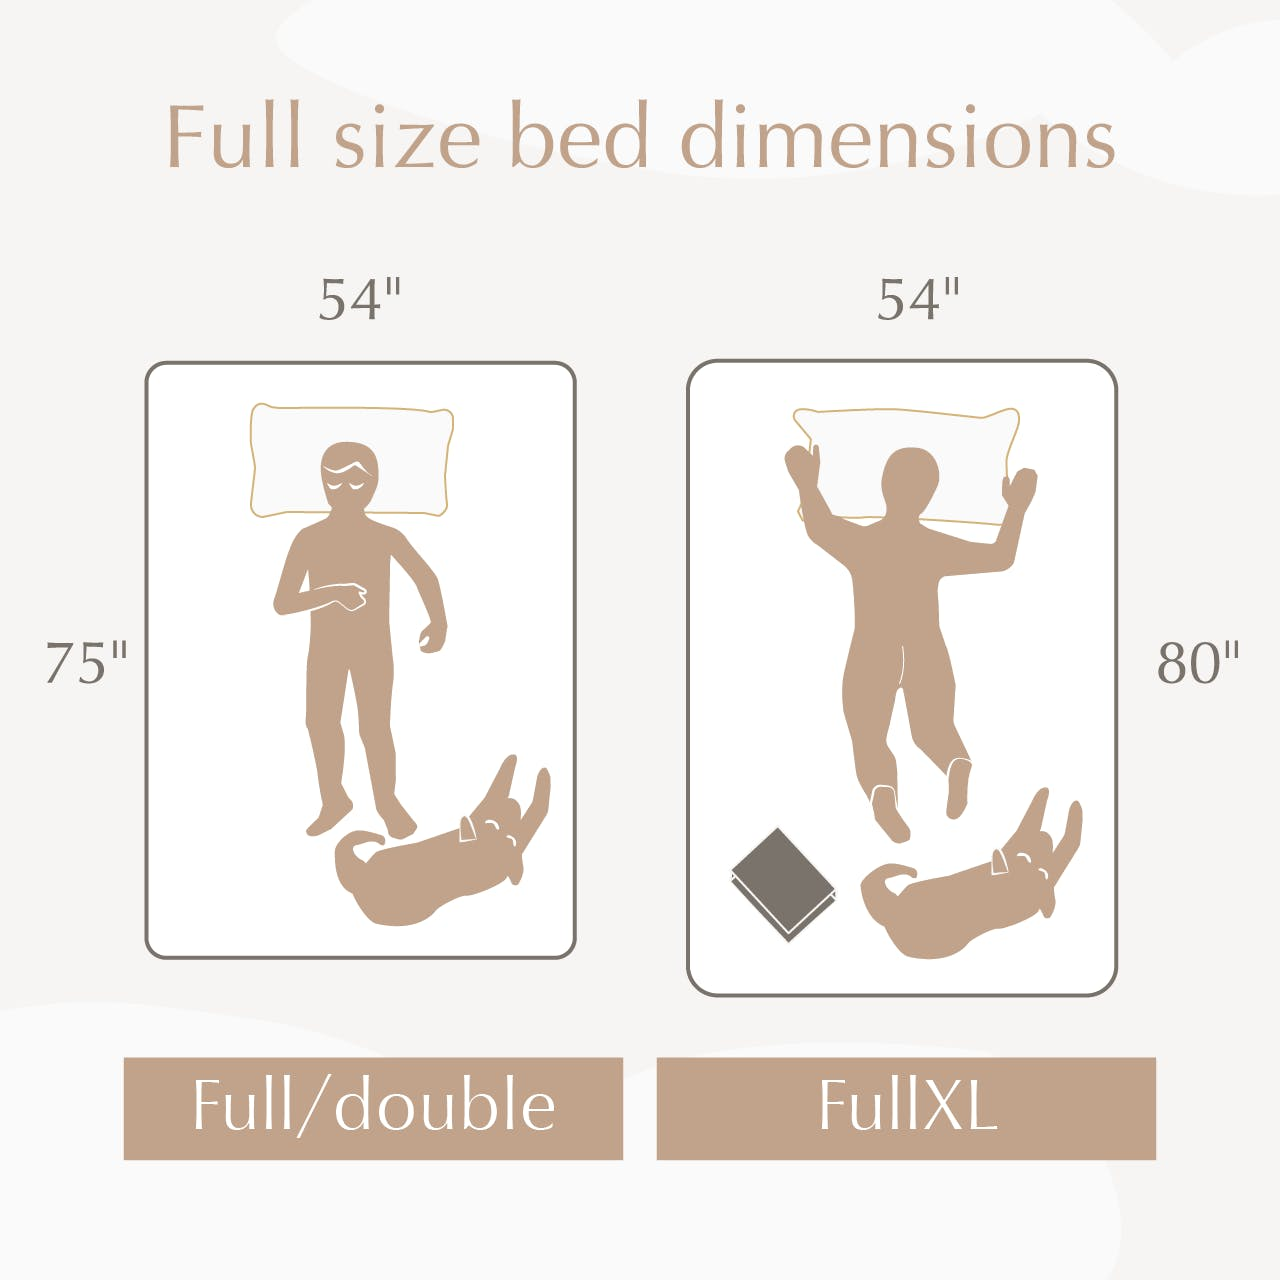 illustration showing the difference between full size bed and full xl bed dimensions